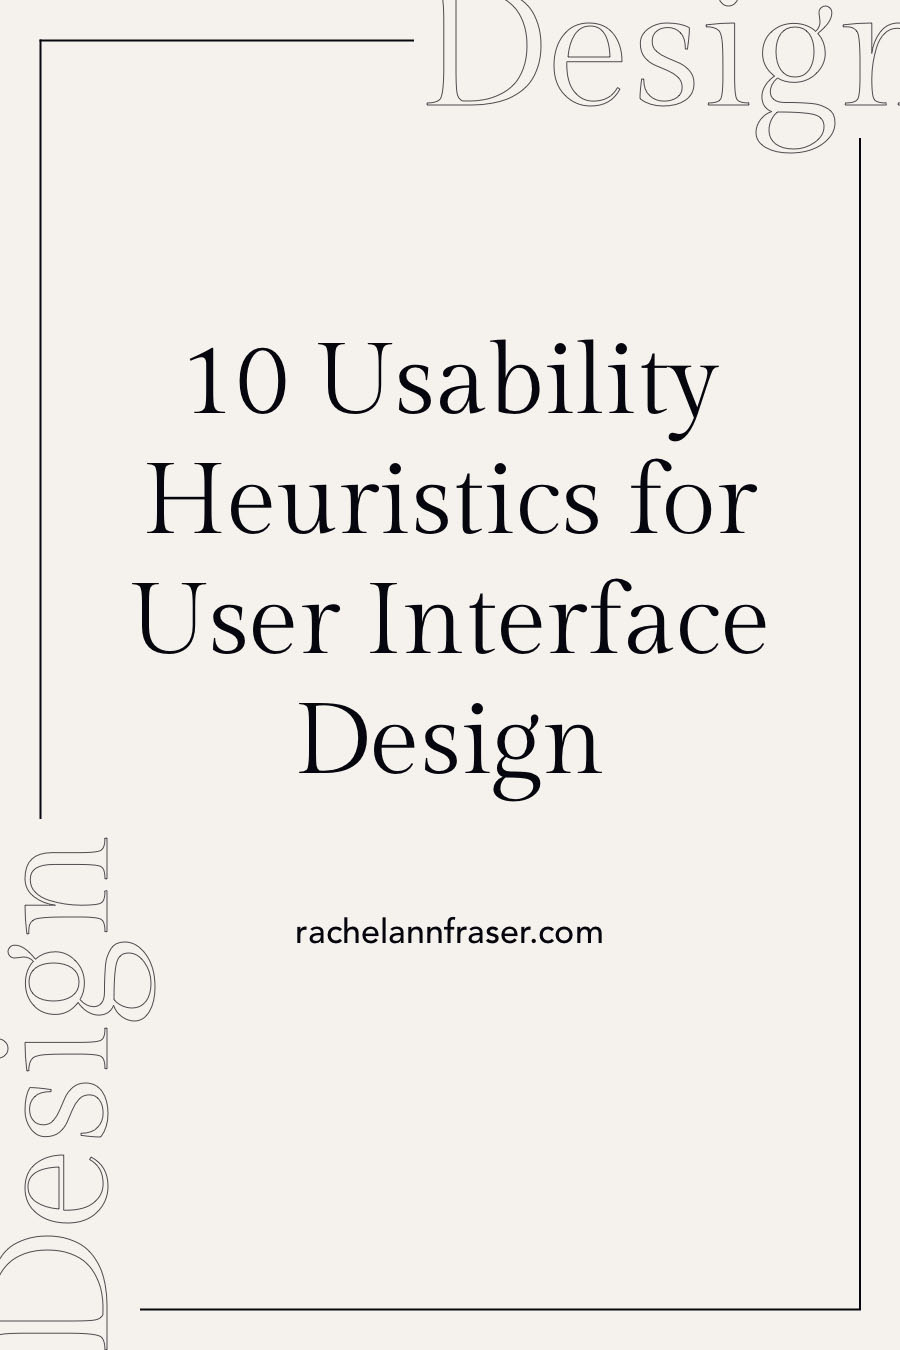 10 Usability Heuristics for User Interface Design